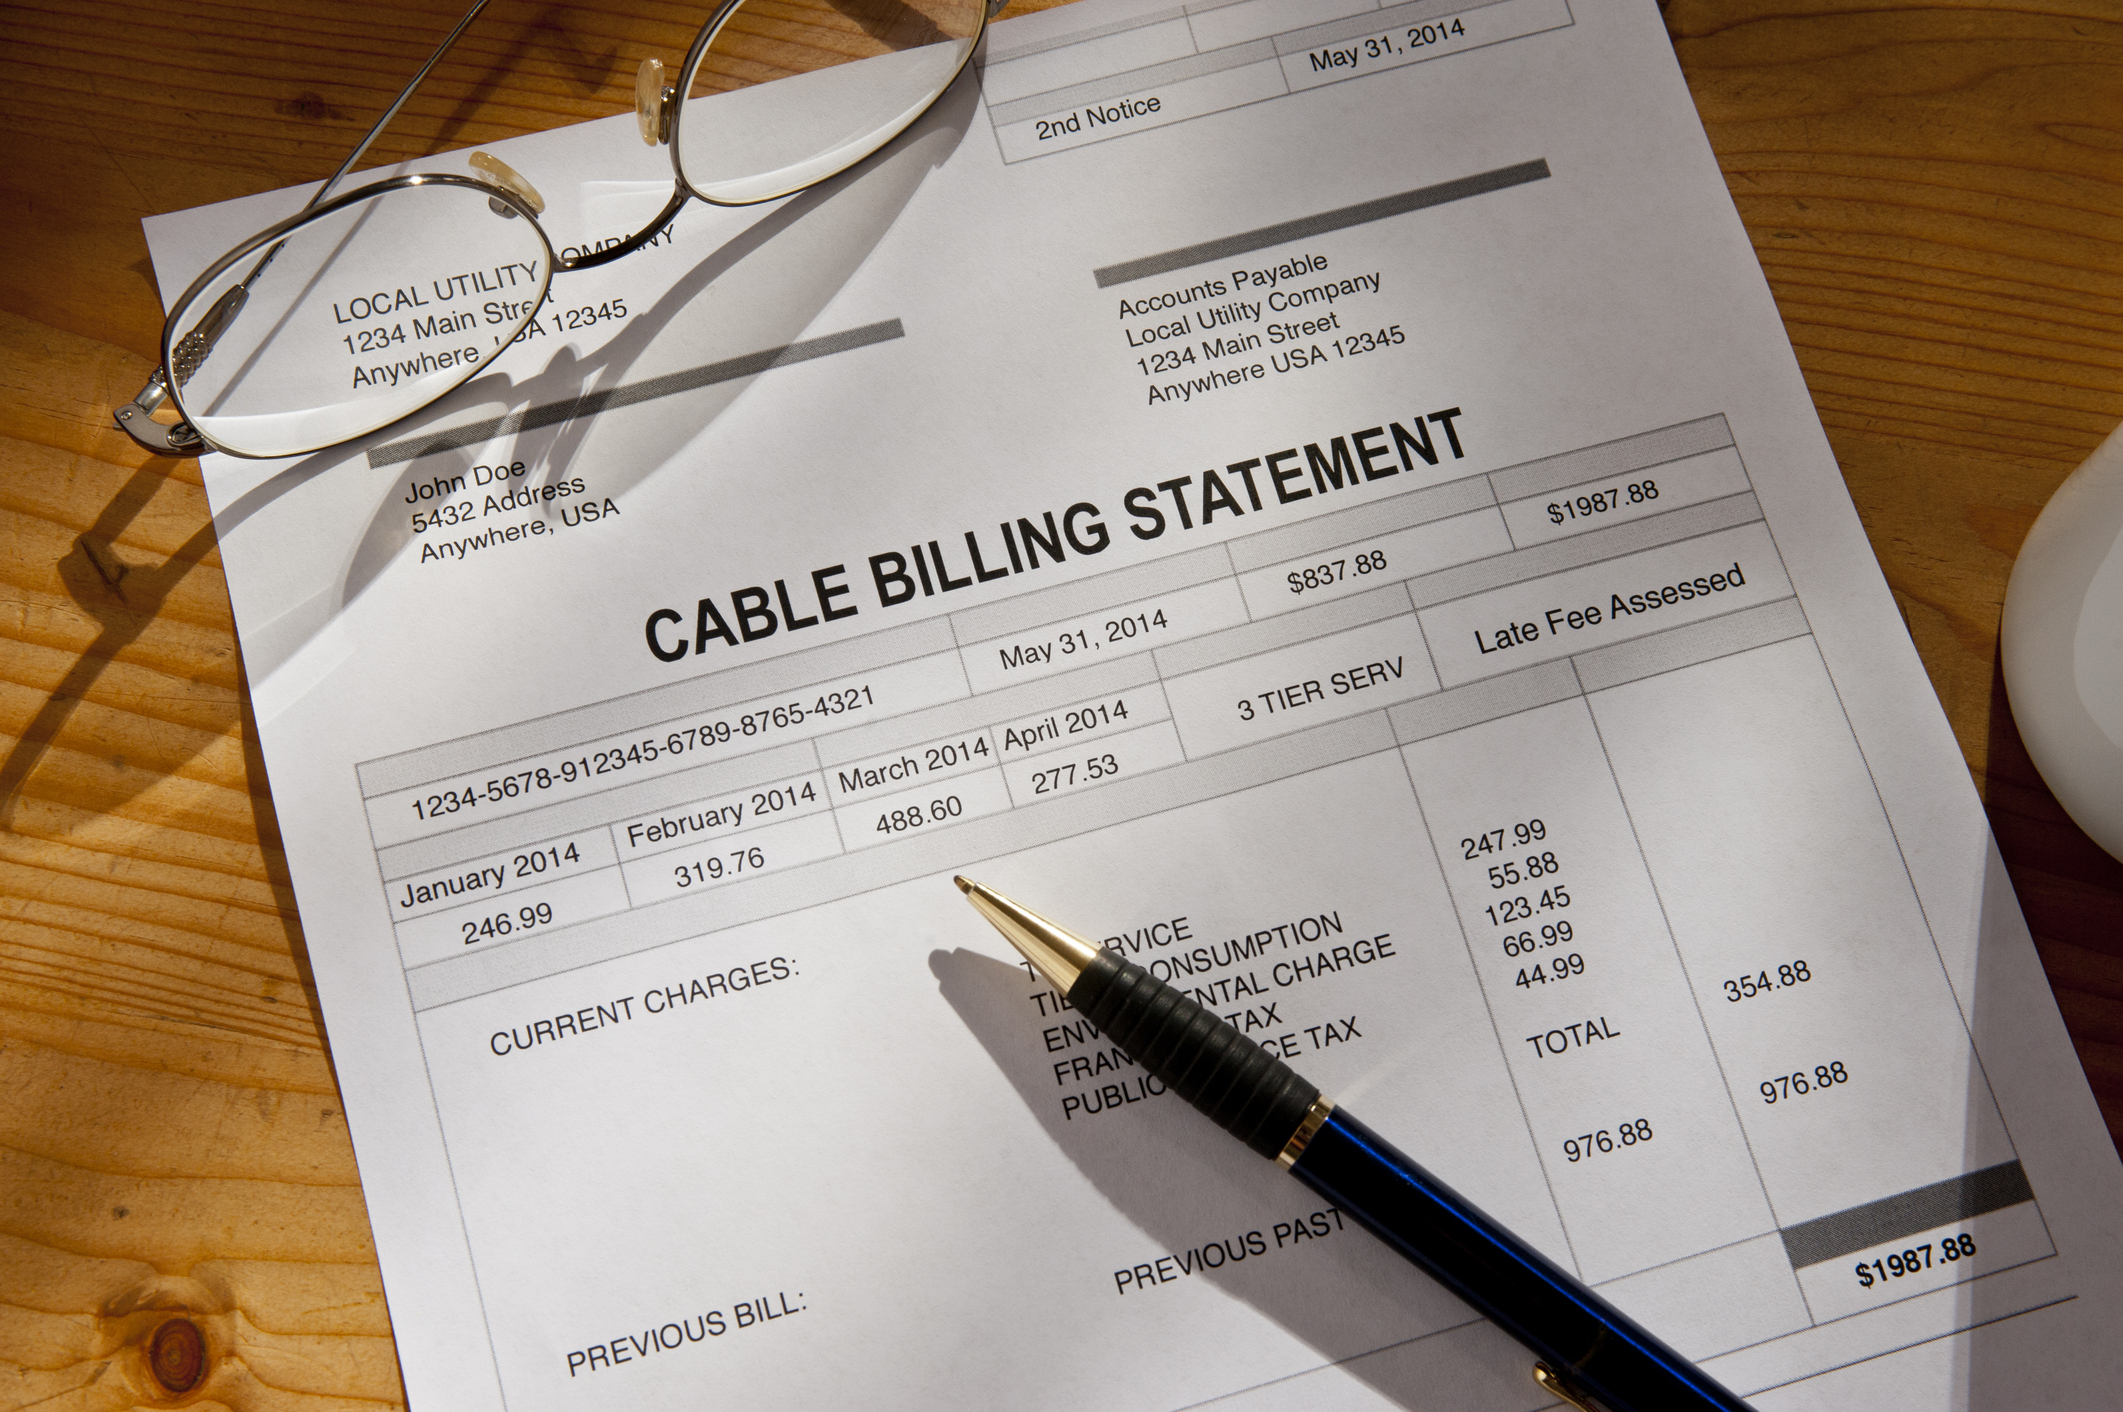 Cable TV companies can charge higher prices thanks to new